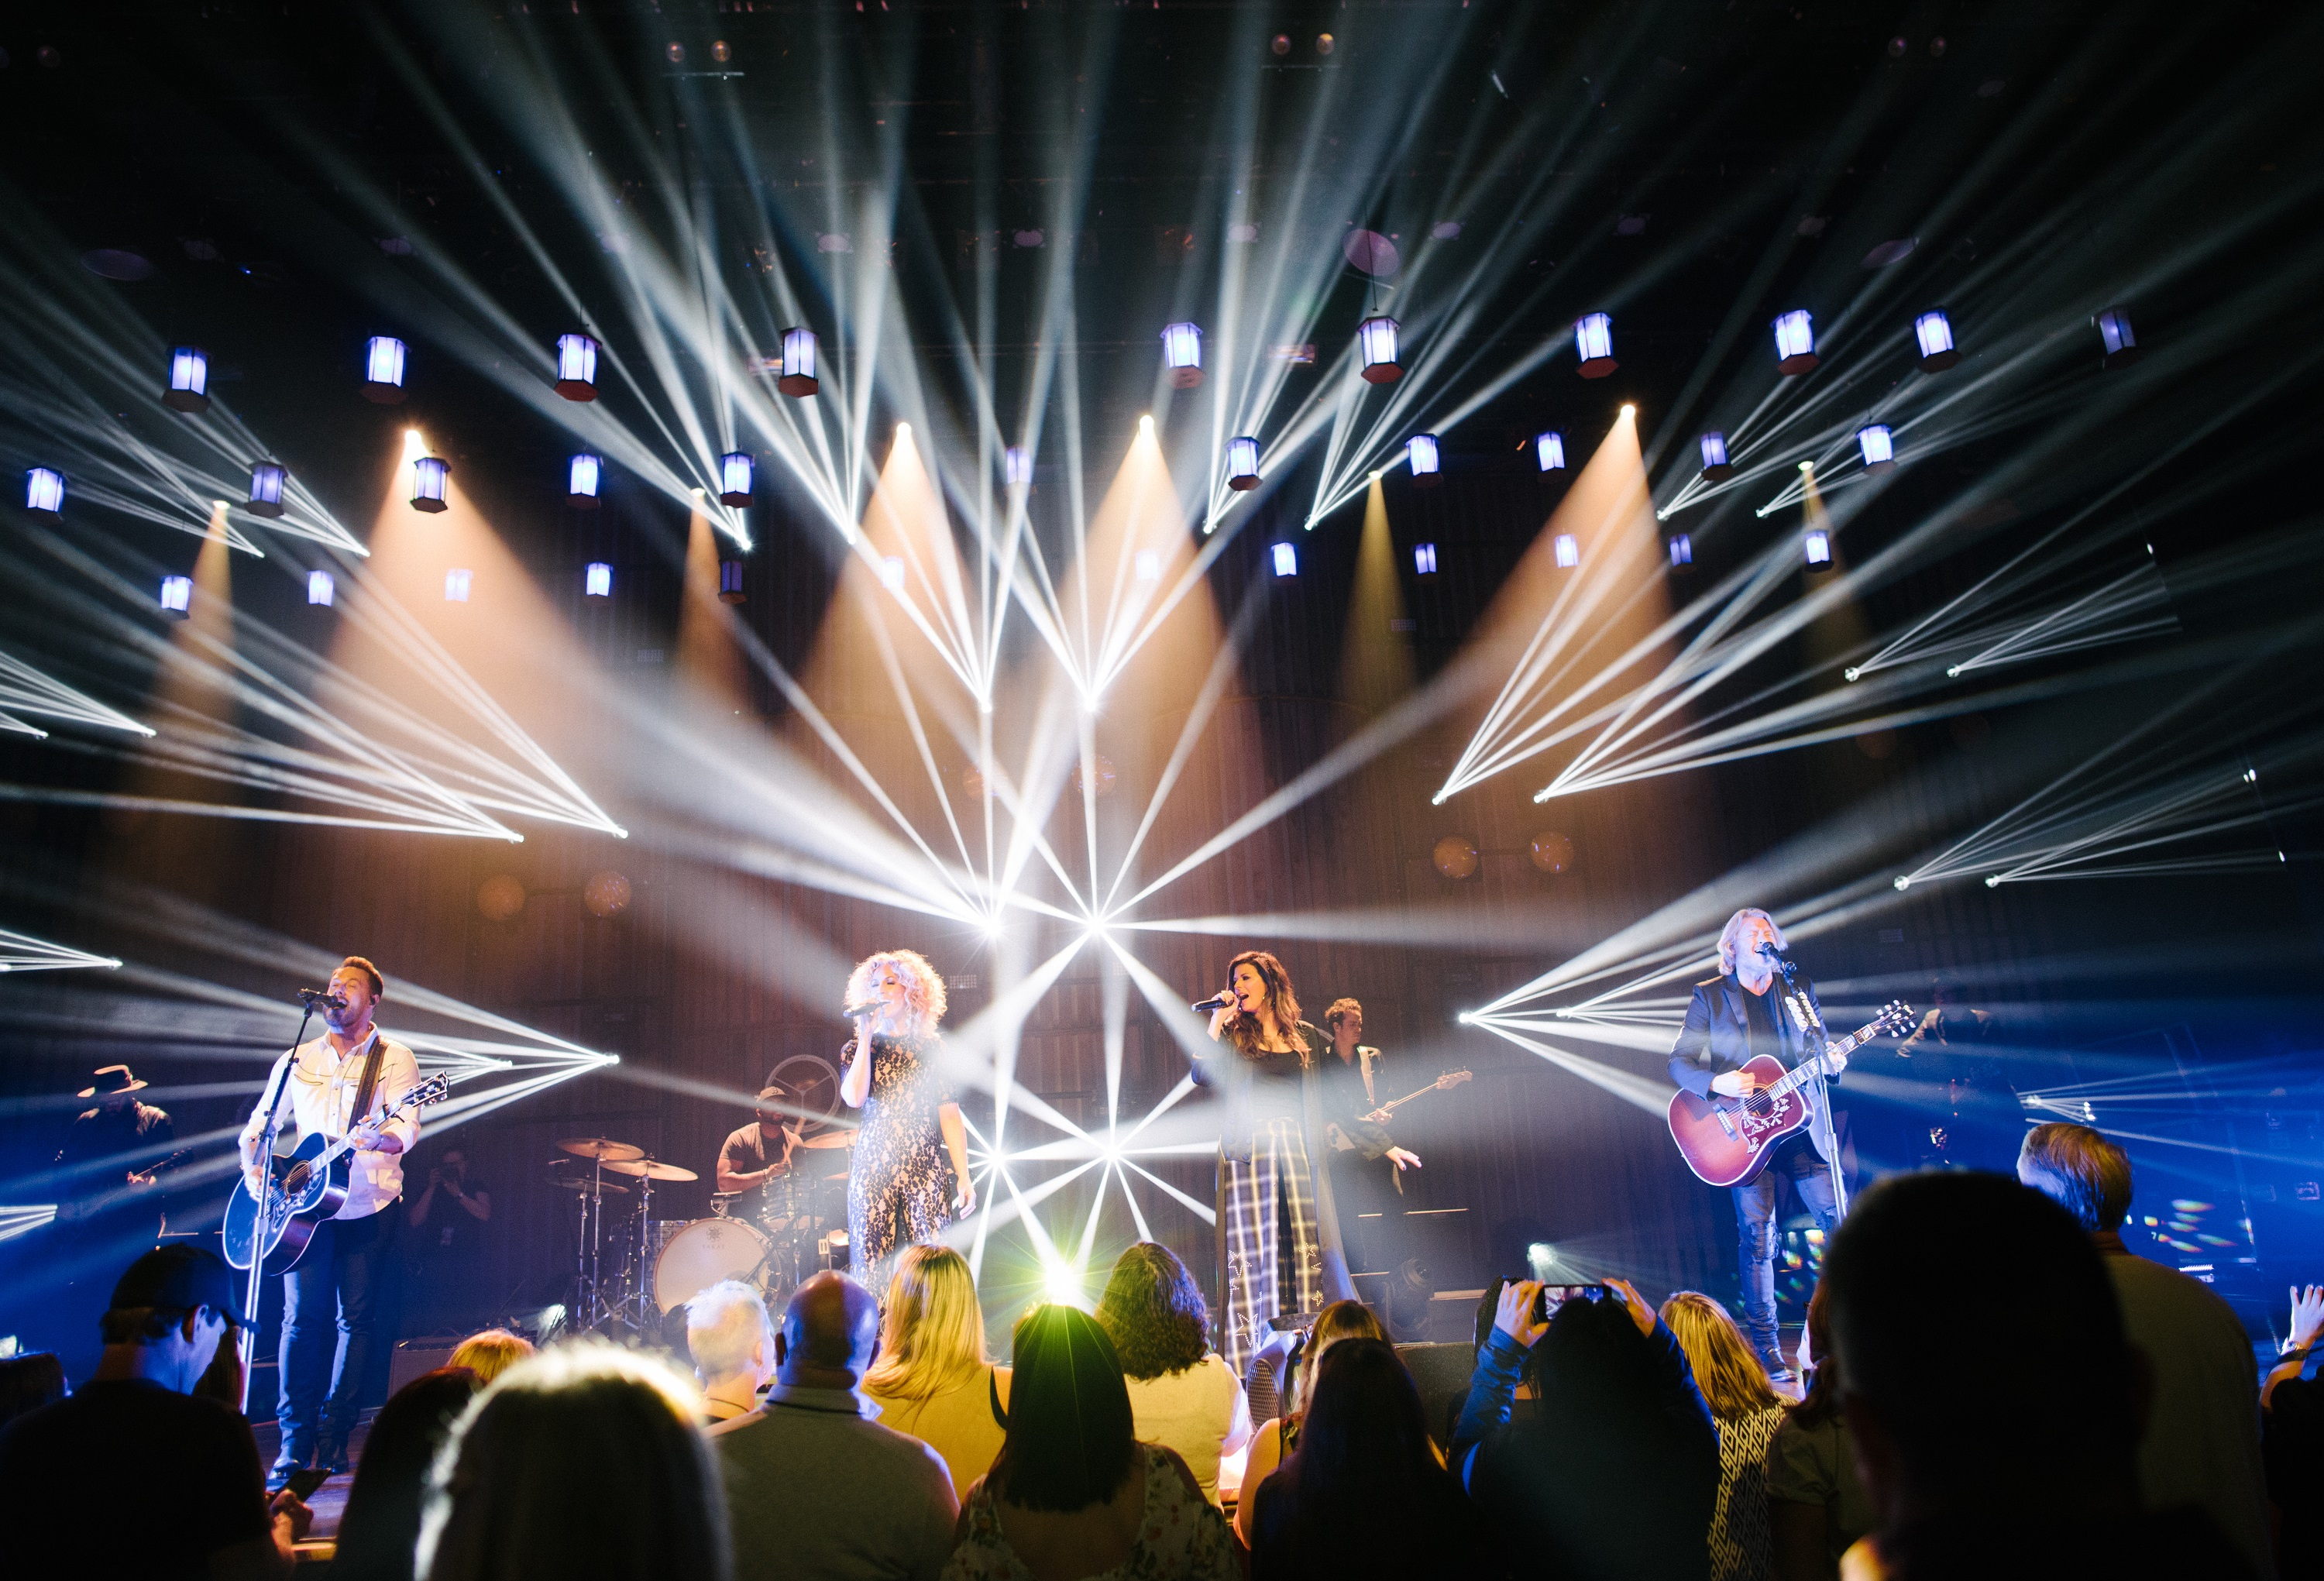 Little Big Town Bring the Hits, Chris Stapleton, Sam Hunt and 'The Breaker' to the Ryman